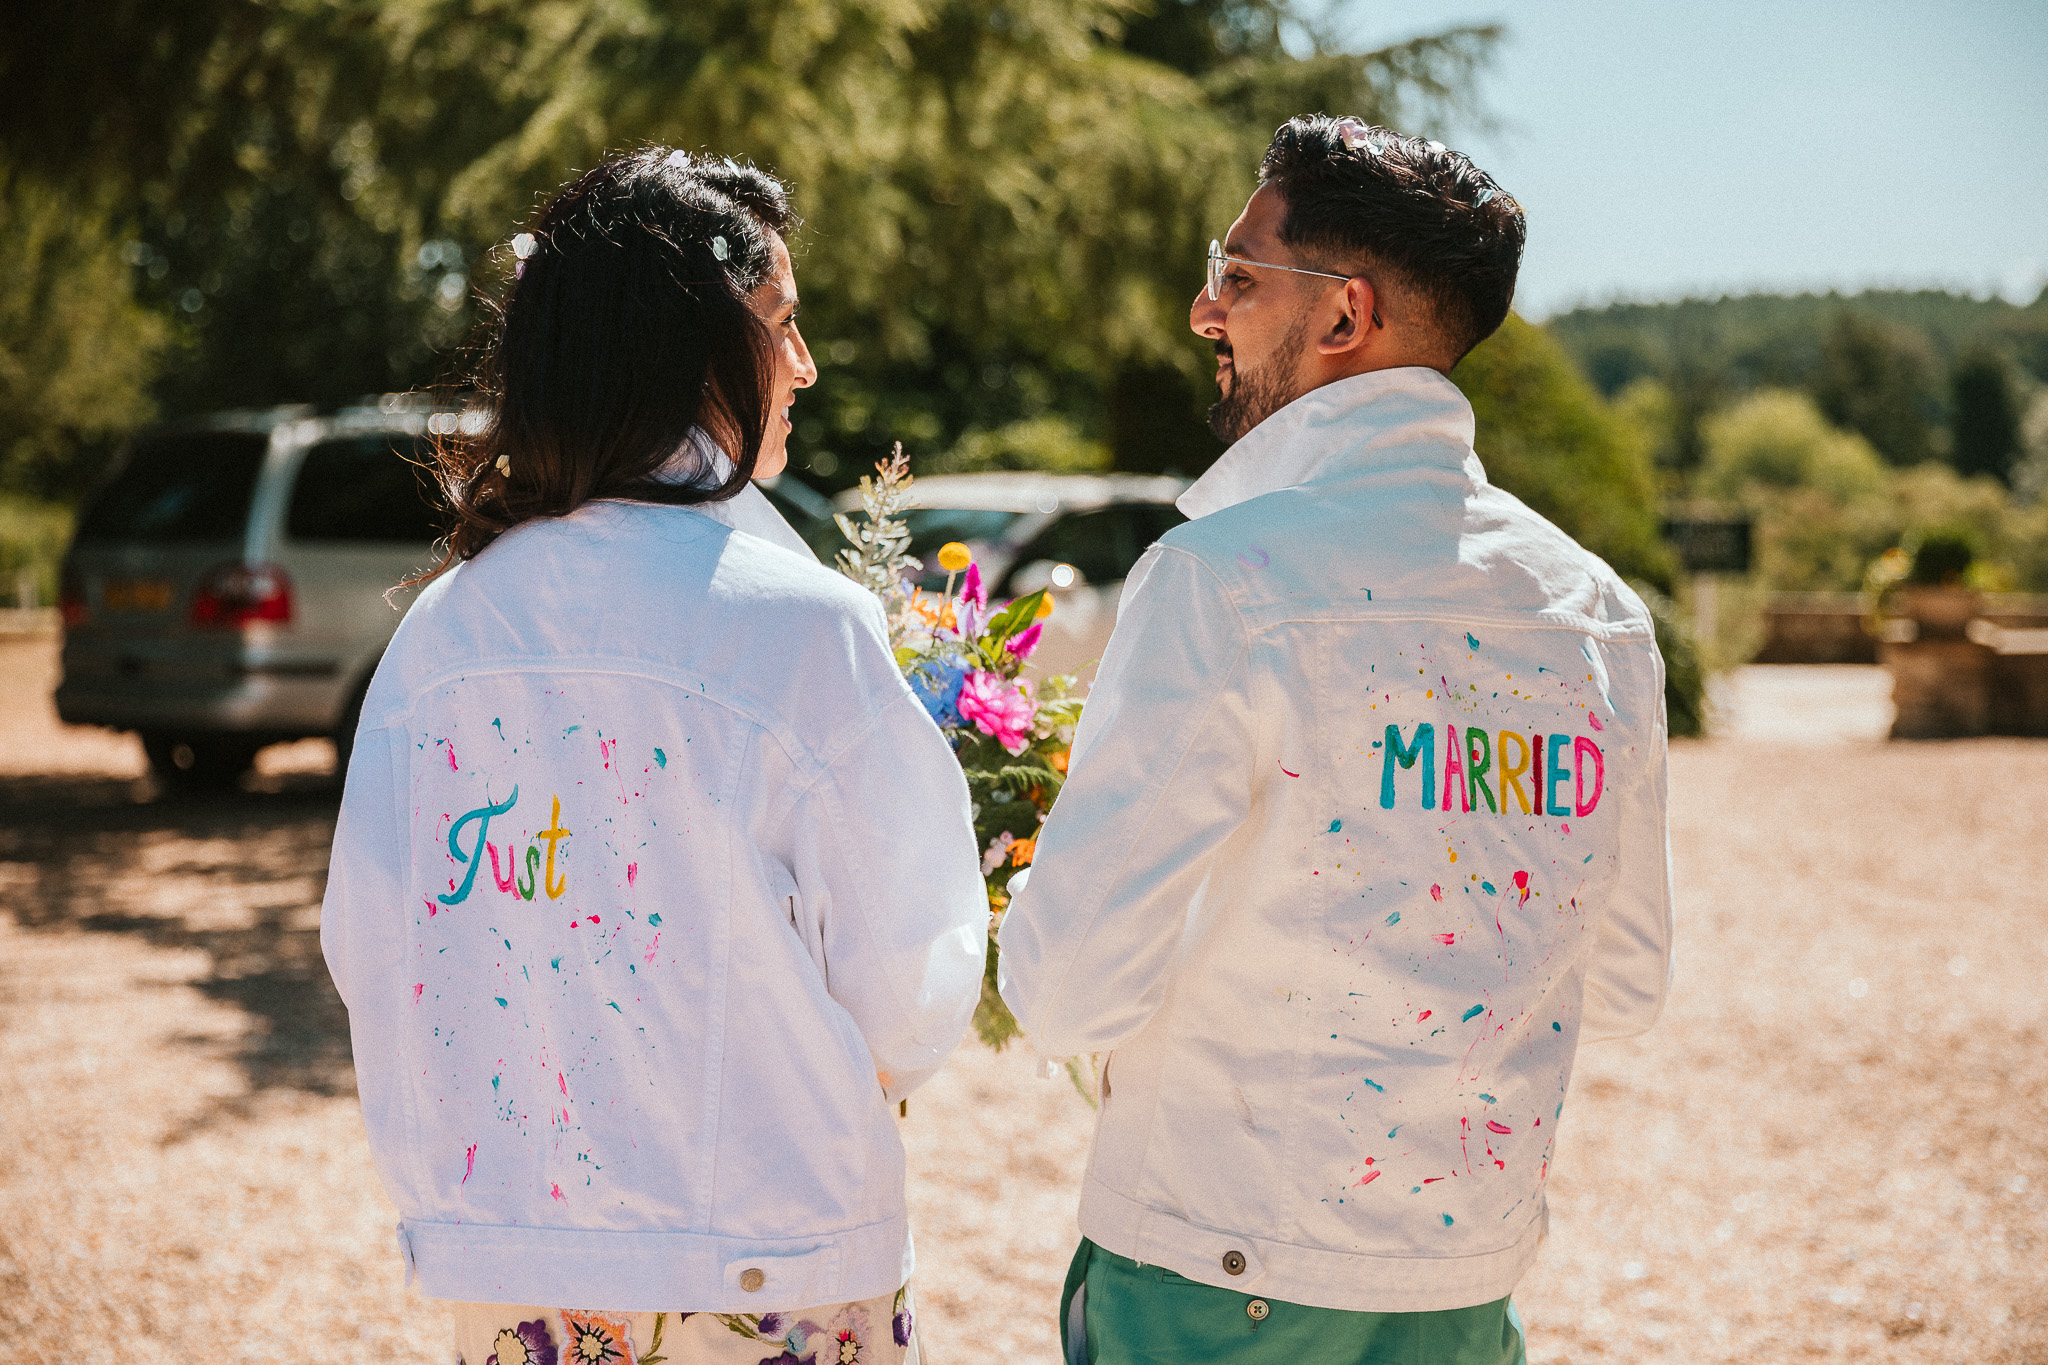 On the day of the wedding at 00:03 i decided to make me and my now husband some denim jackets, i did not have a clue what to do but i knew it had to be colourful like the day! So i came up with this, they were a great extra pinch of fun to the day!